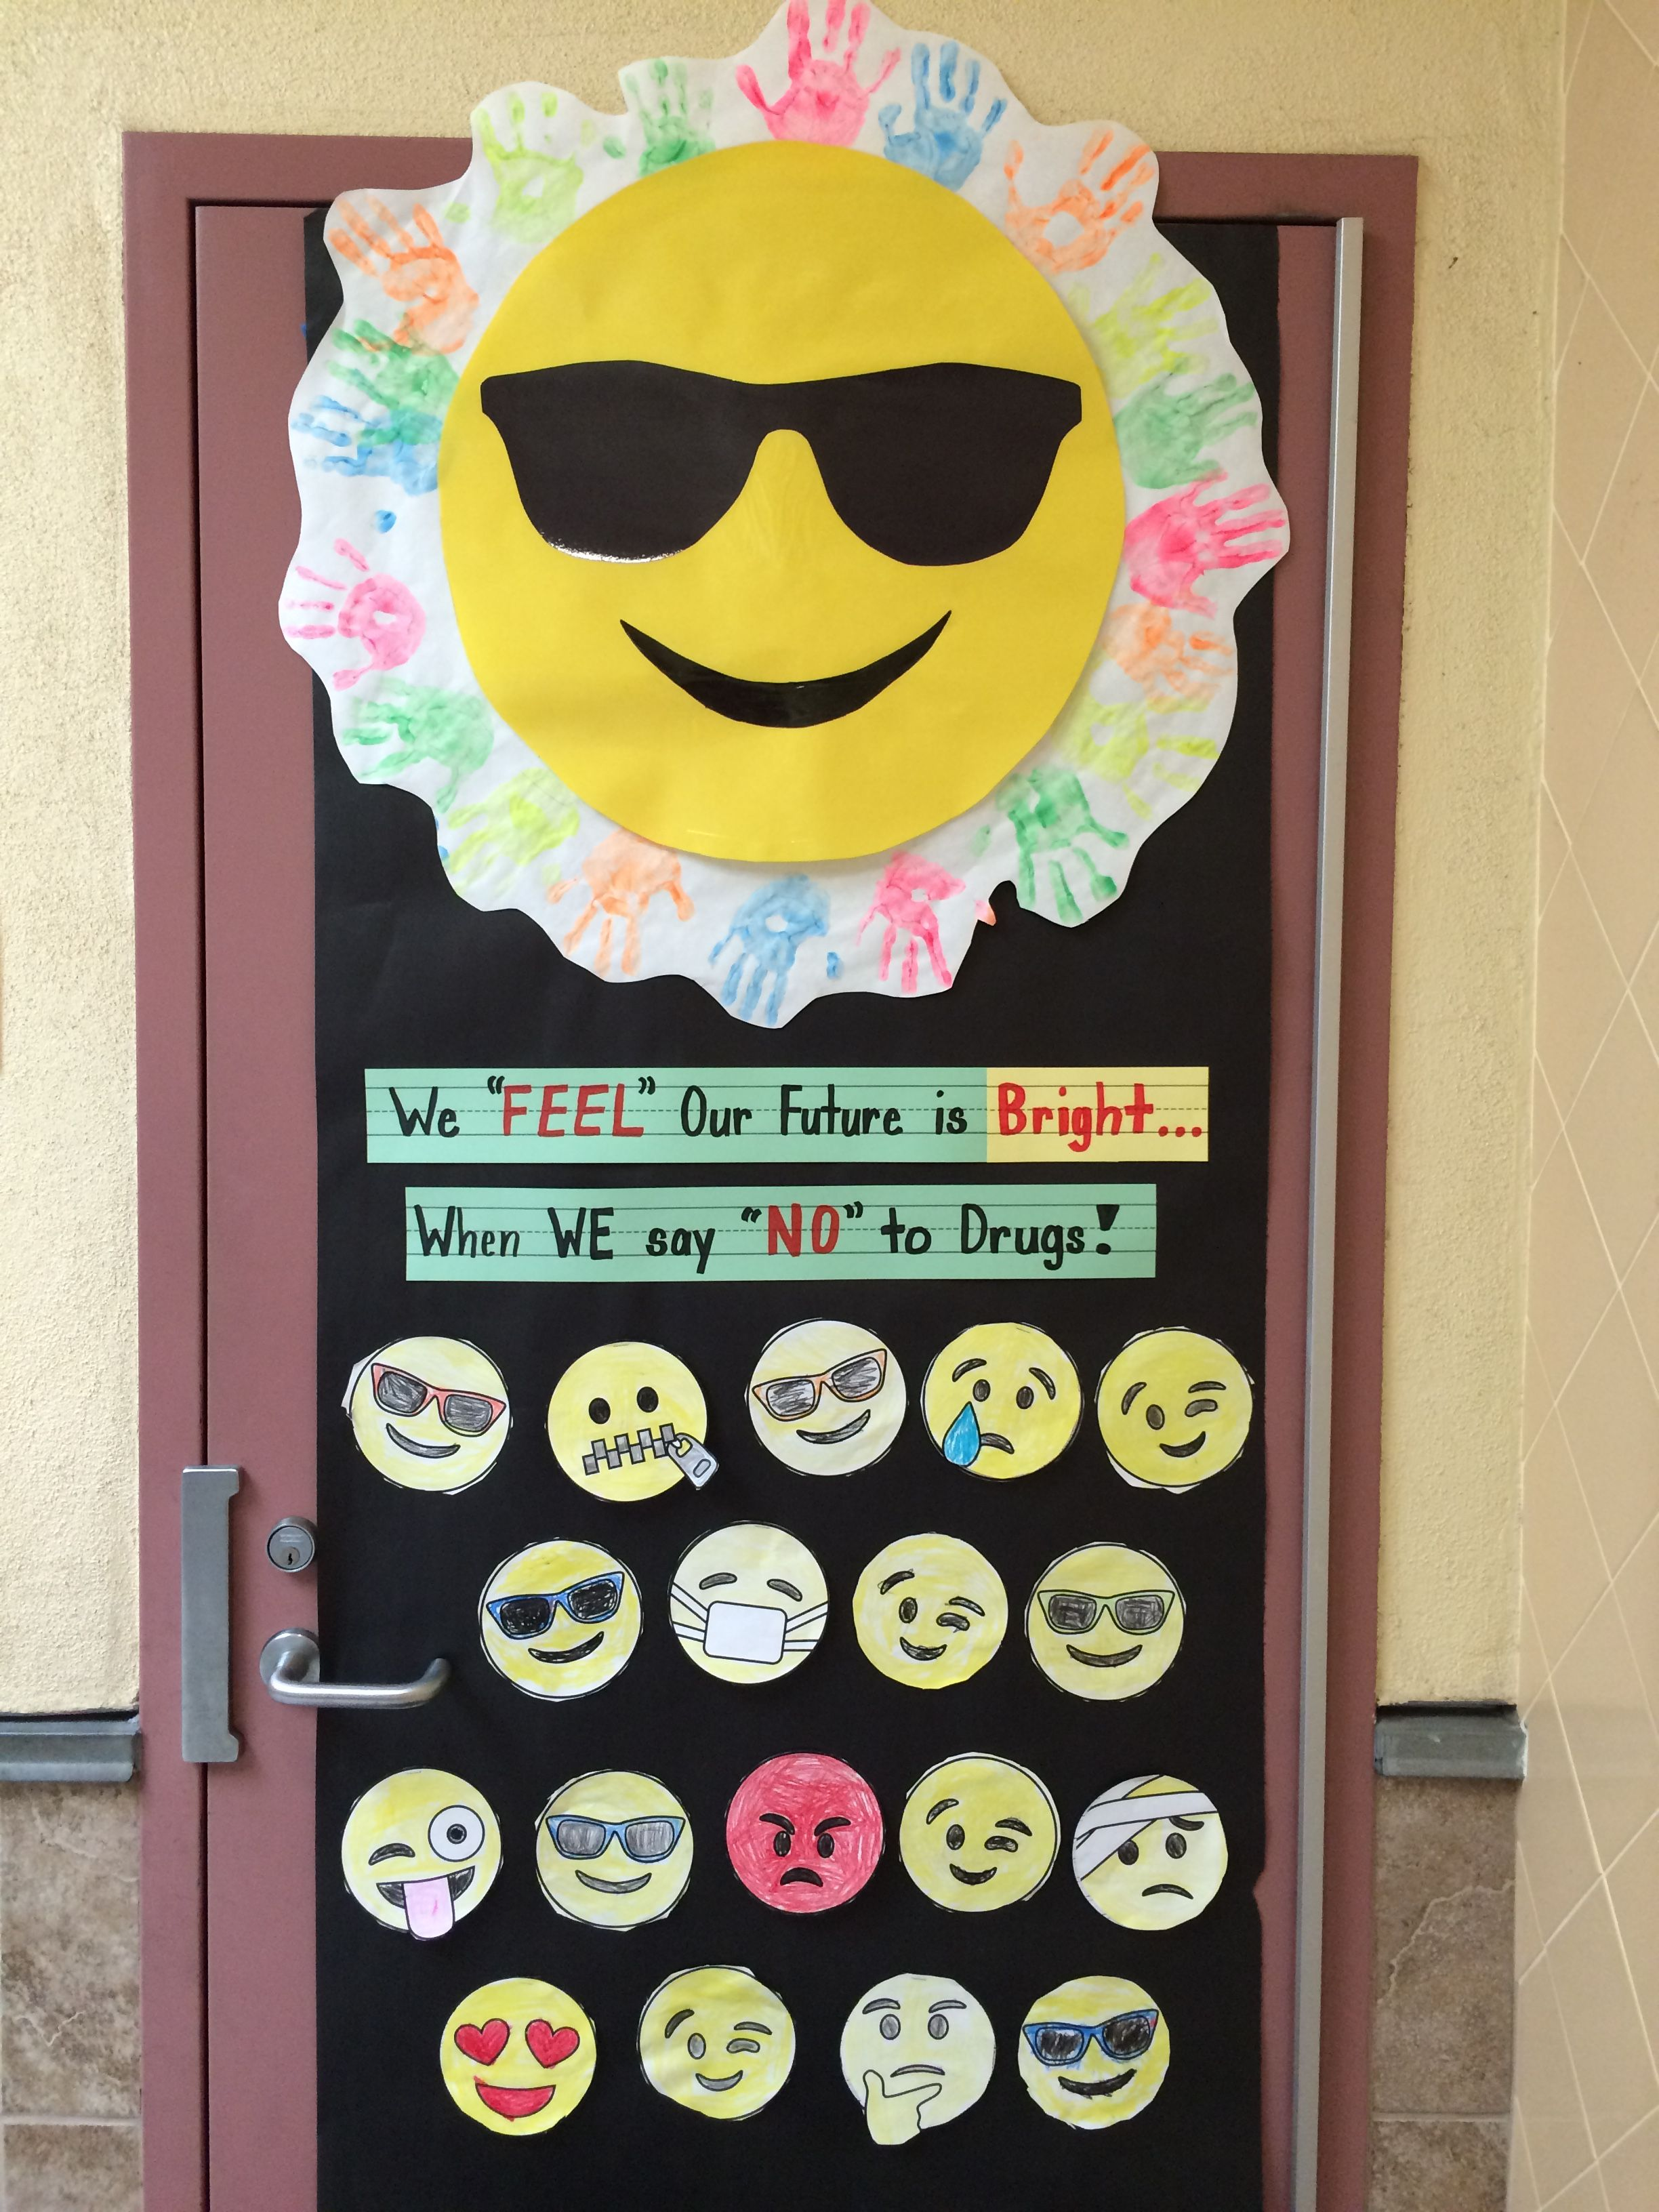 Red Ribbon Week Emoji Style Kids Write About How They Feel About Making Unhealthy Choices Red Ribbon Week Drug Free Door Decorations Red Ribbon [ 3264 x 2448 Pixel ]